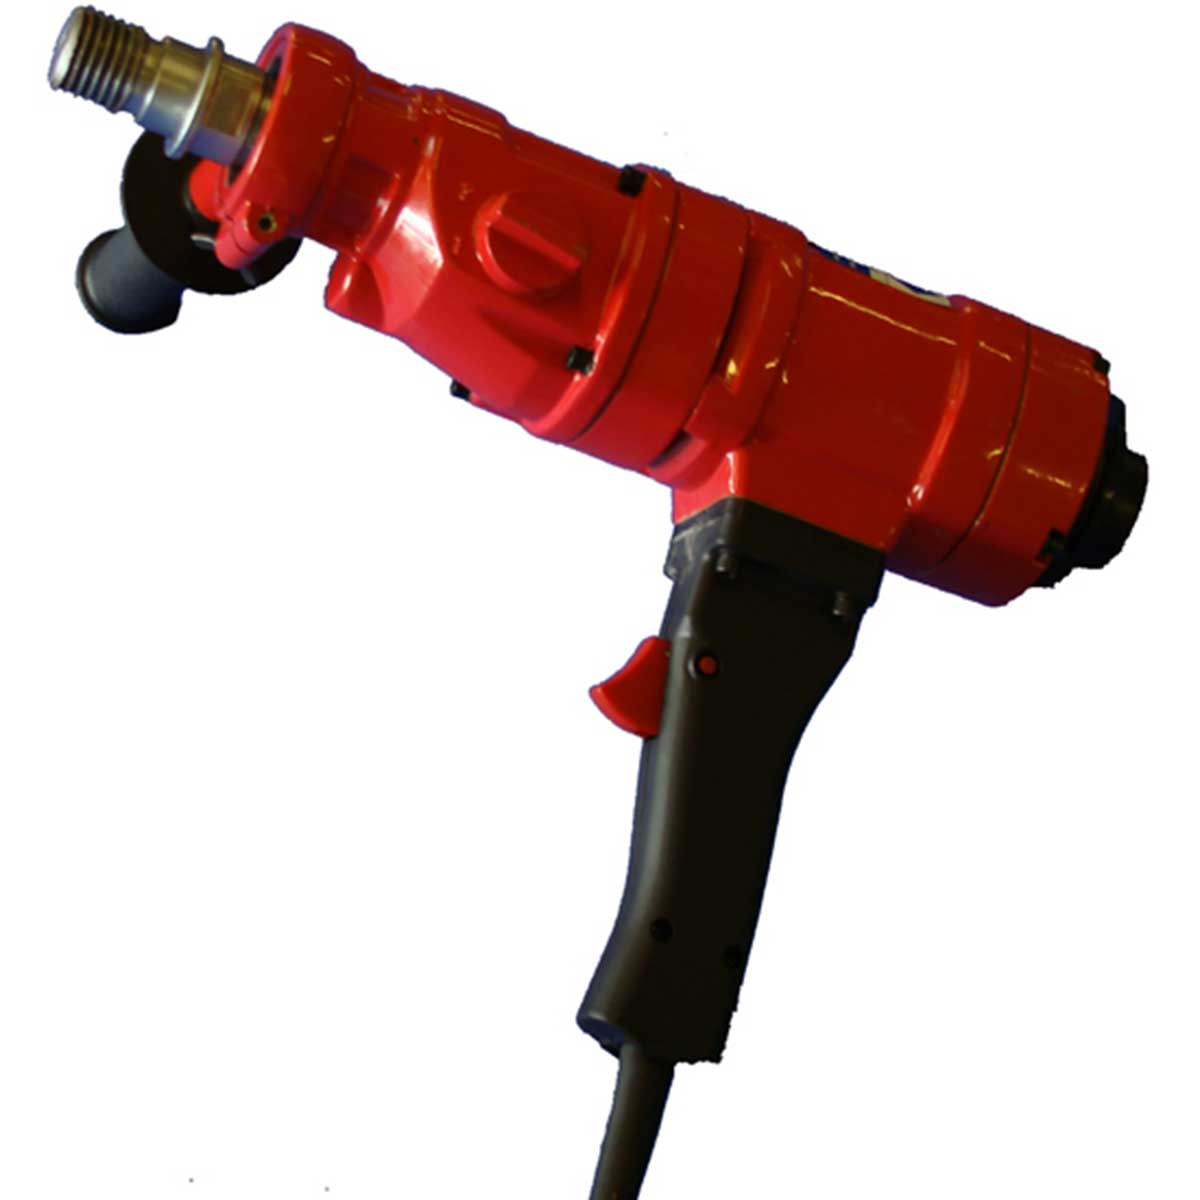 Kor-It Wet Hand-Held Core Drill